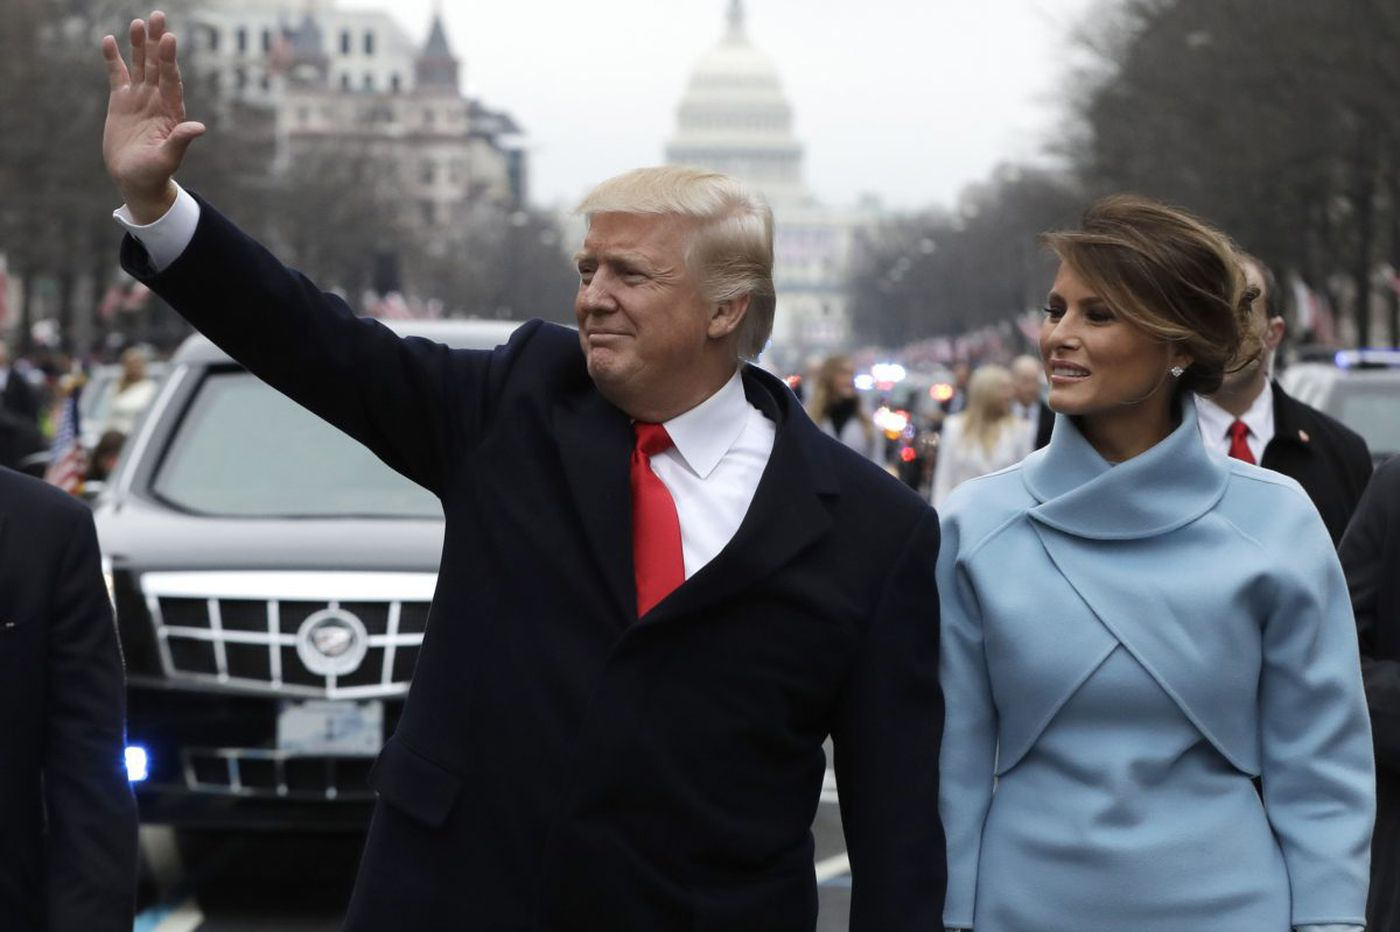 The 10 best things Trump has done in his first year in office | Opinion